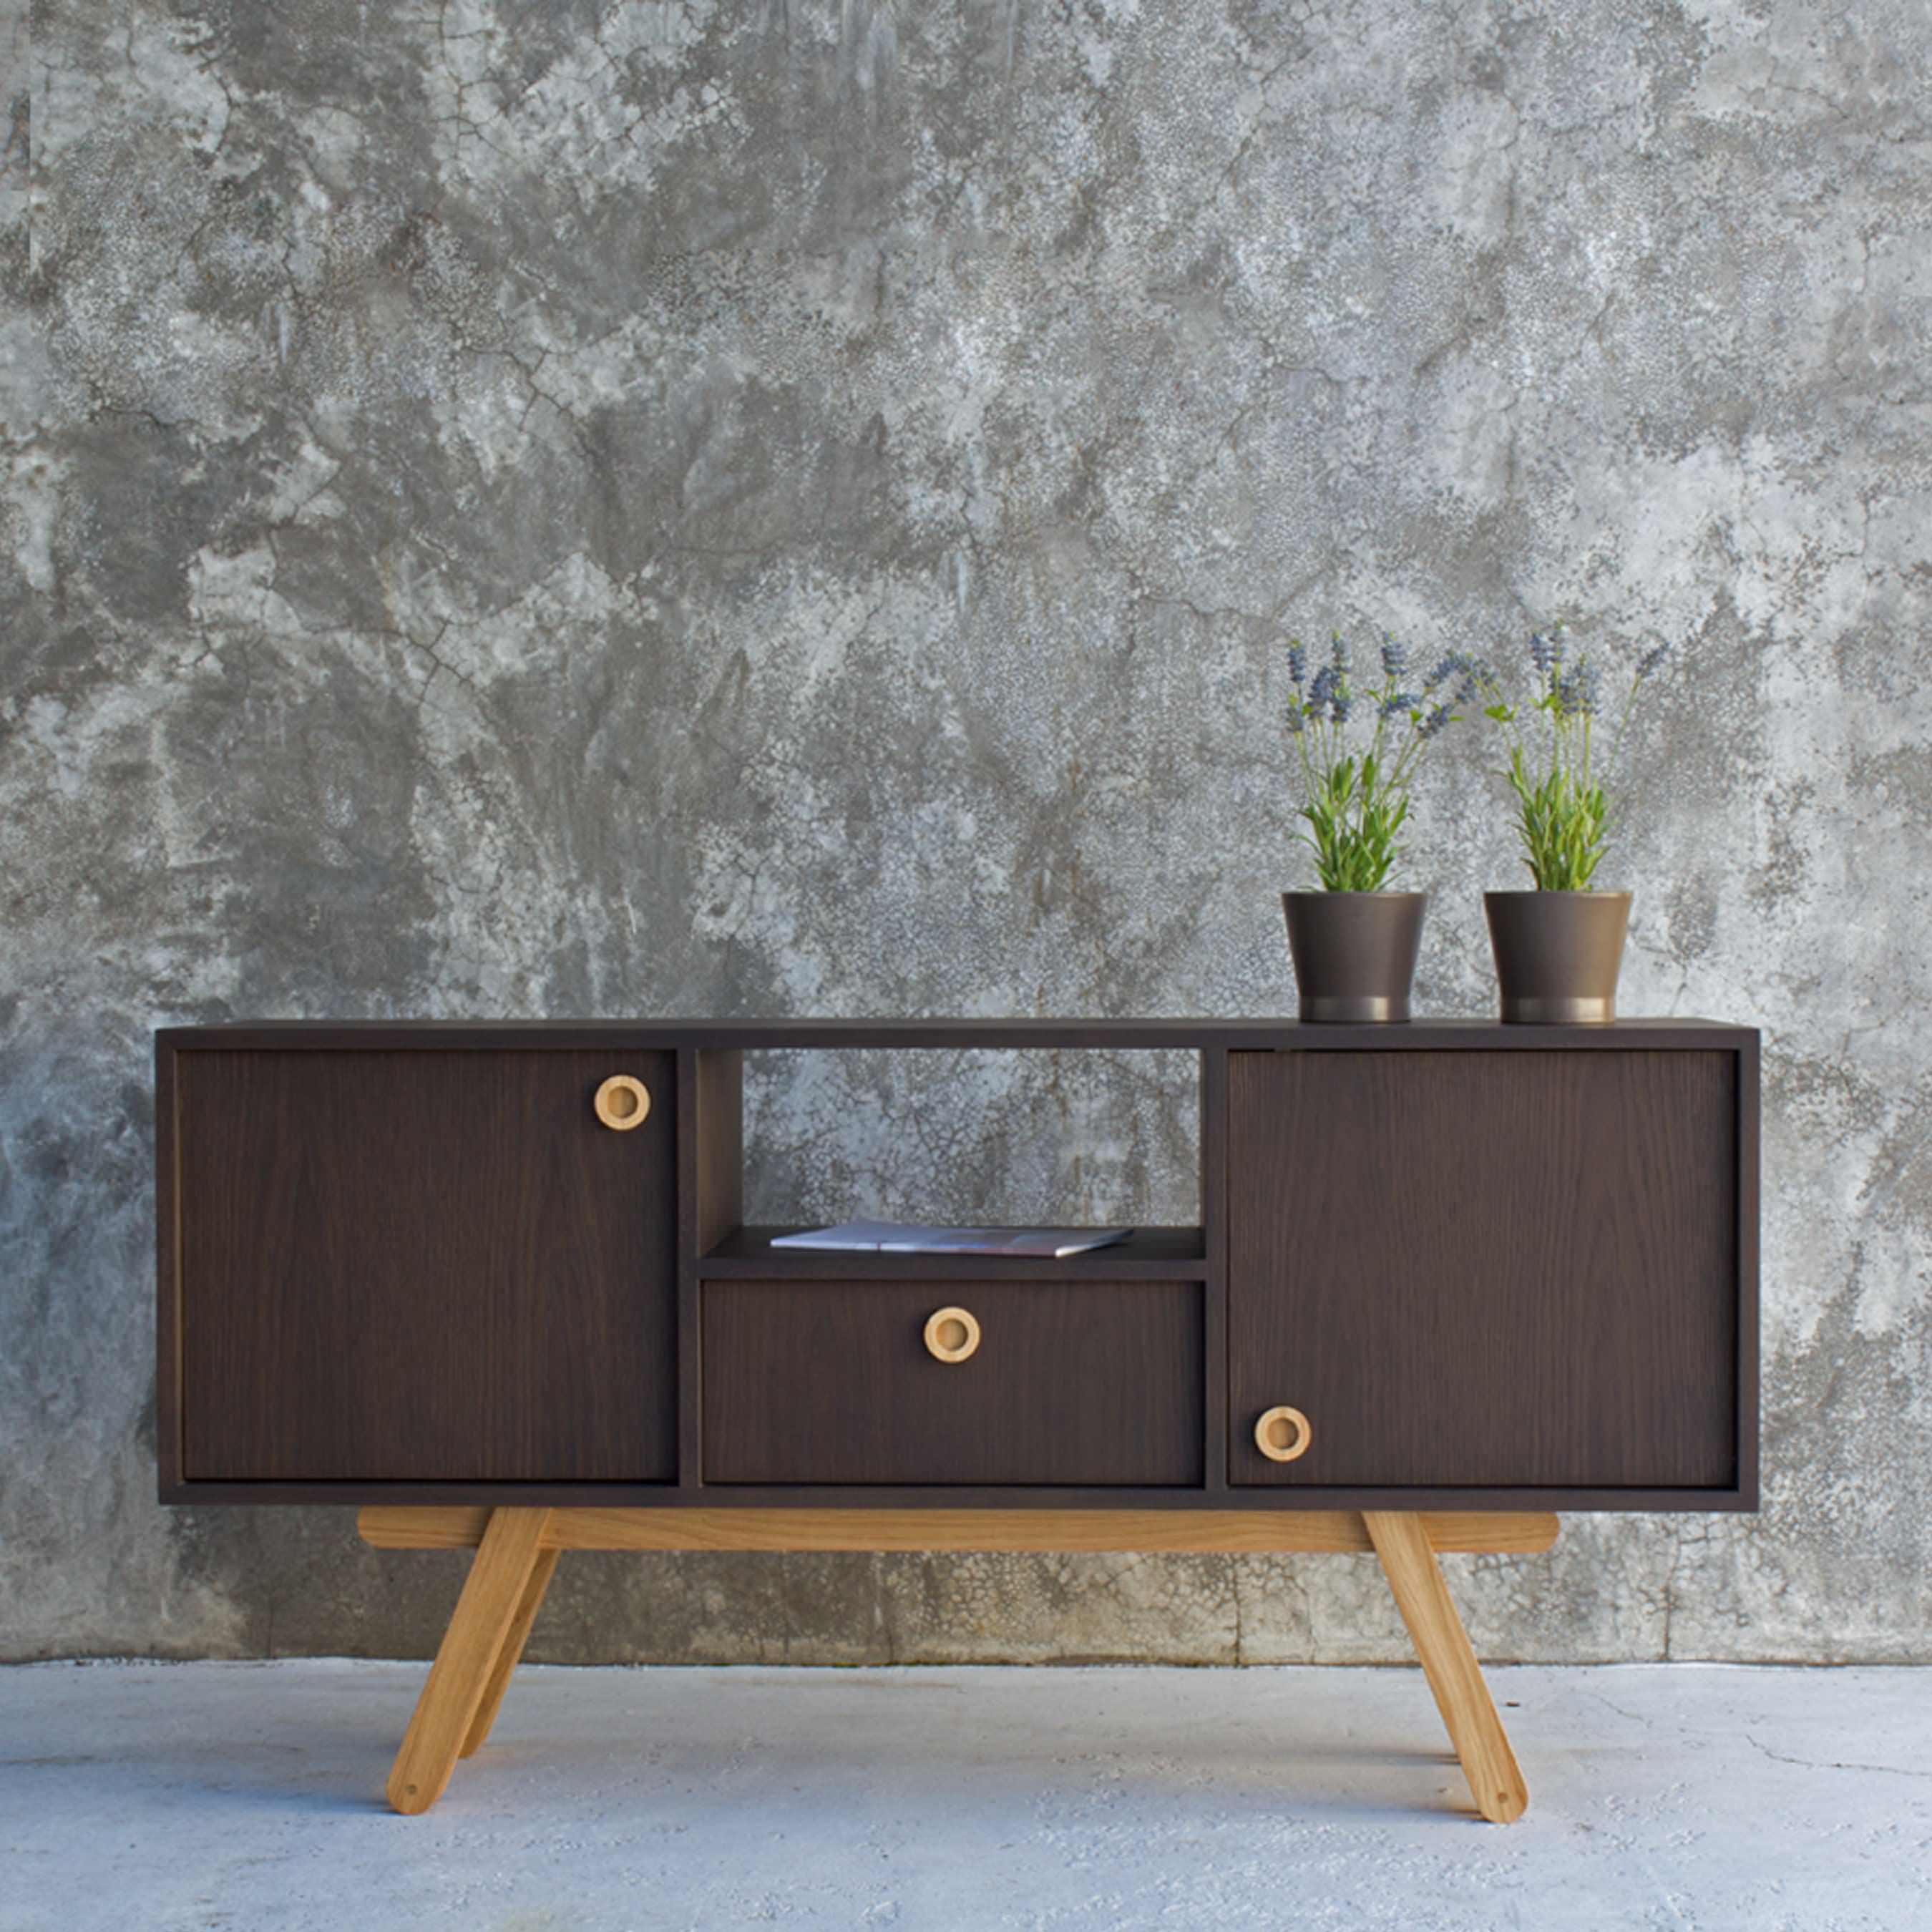 Bracara Sideboard 1011/A - Products